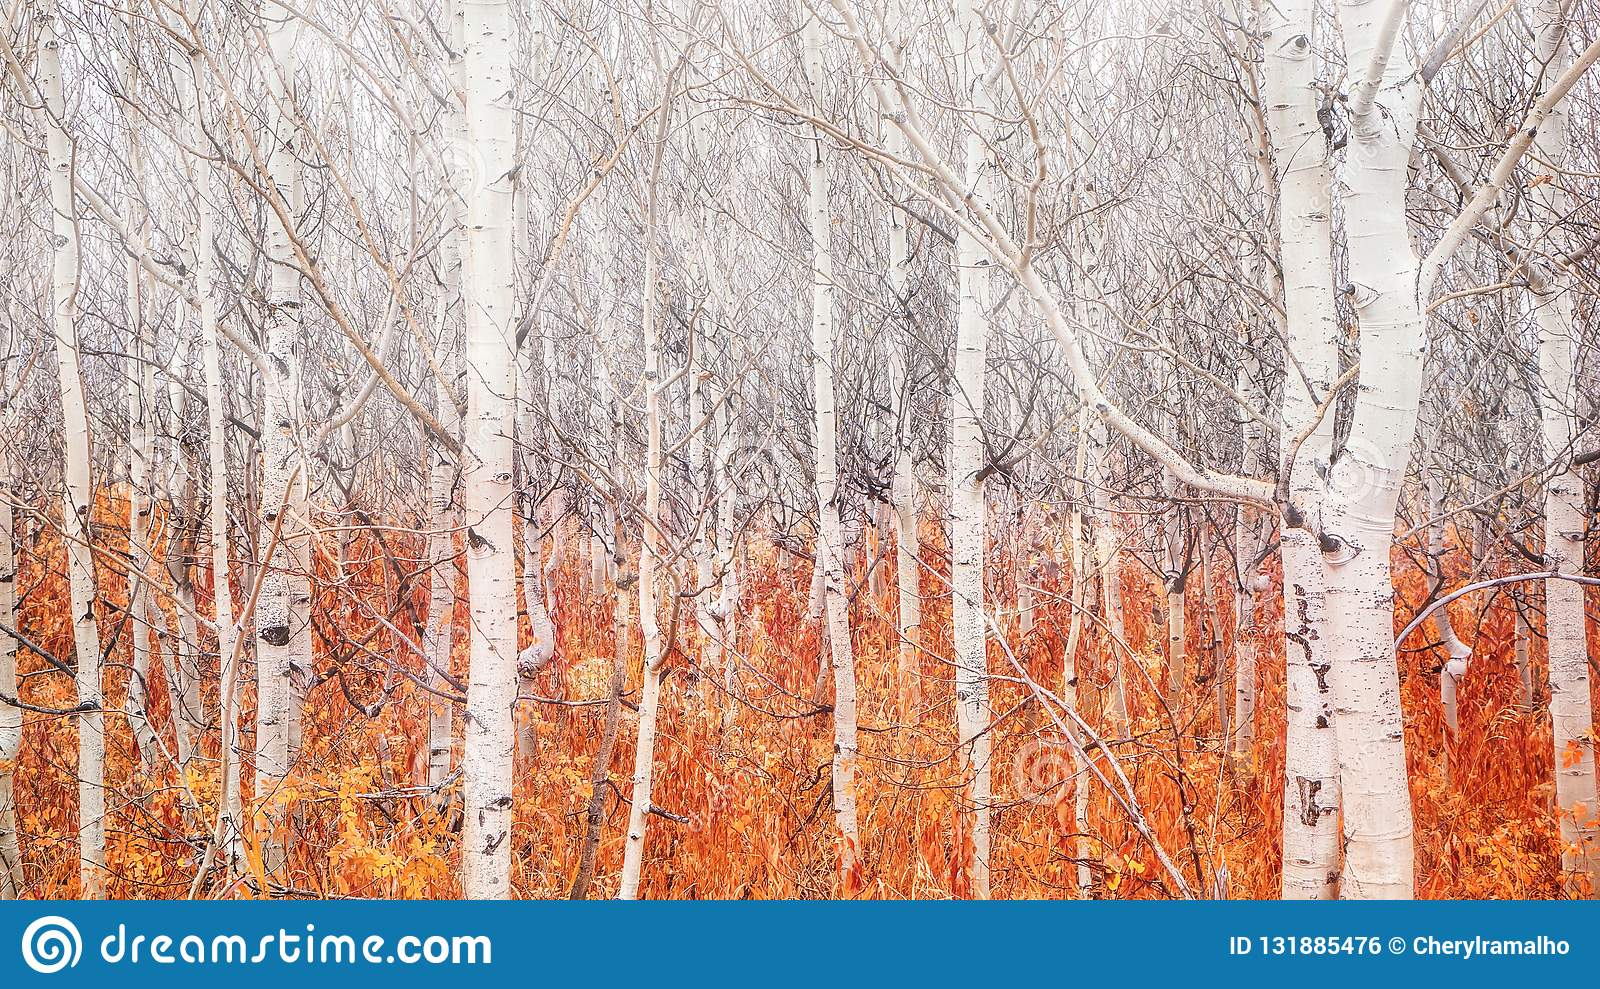 Bare aspen trees with fallen autumn foliage showing that winter is coming.